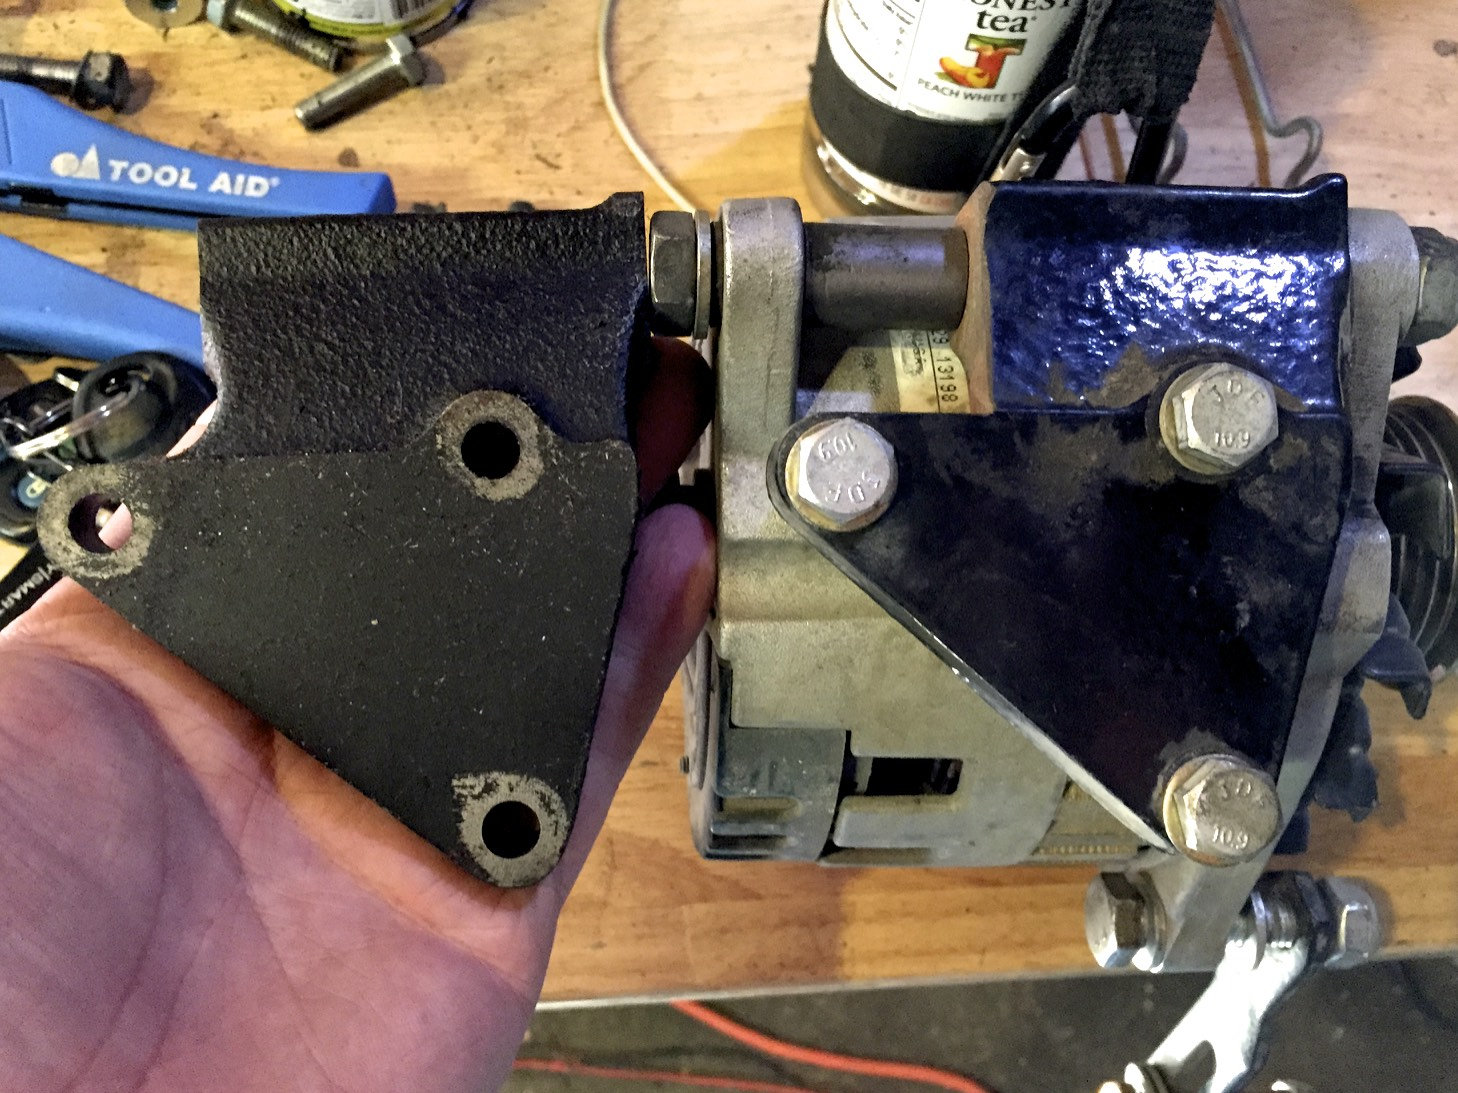 The original (left) and modified (right) brackets. If you look carefully you can see that where the long bolt goes through the bracket from the alternator is shorter on the modified one.